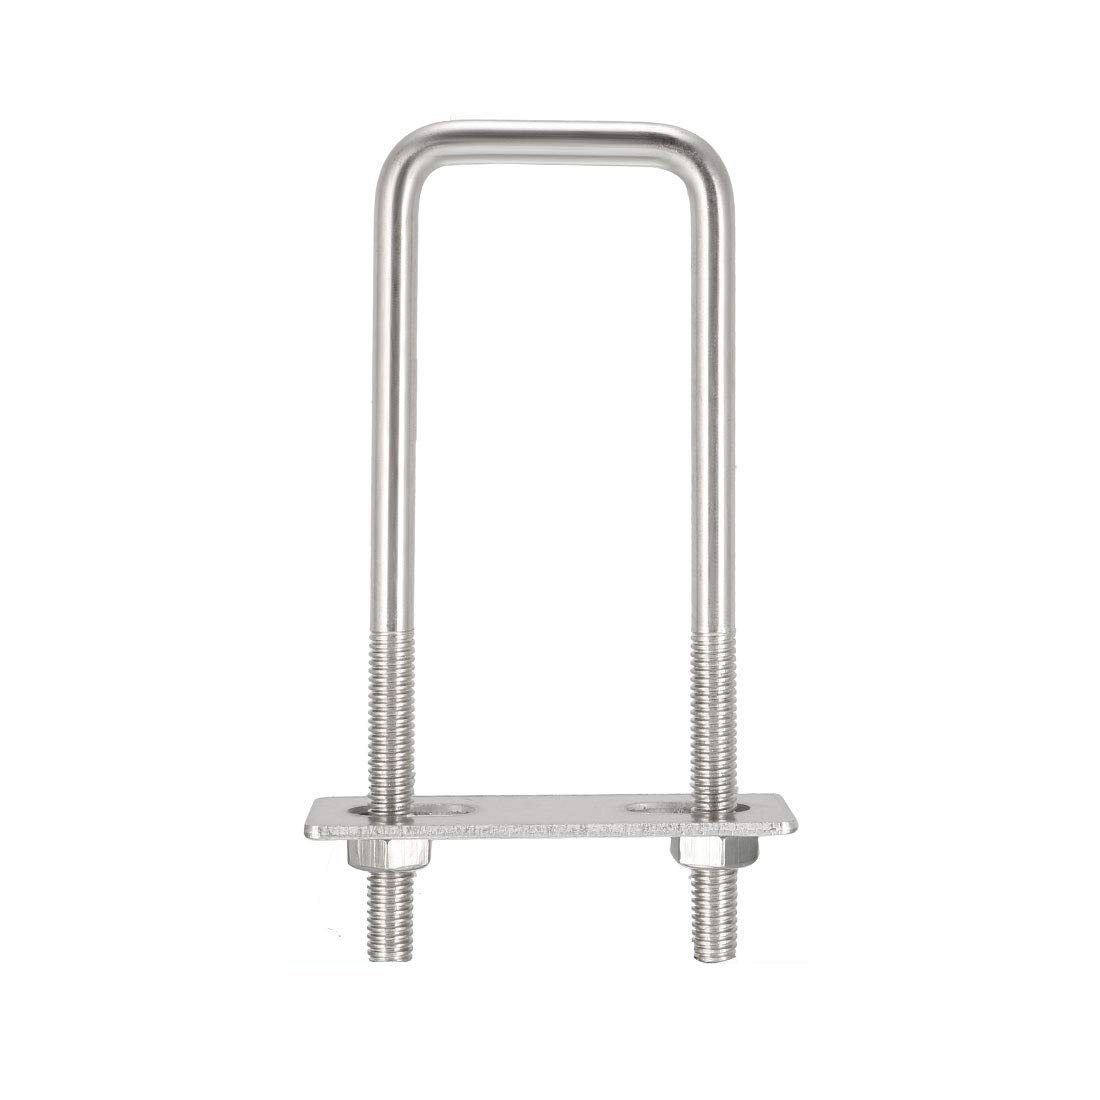 YXQ Square U-Bolts 304 Stainless Steel with Nuts Frame Straps (M6,31mm,6Pcs)